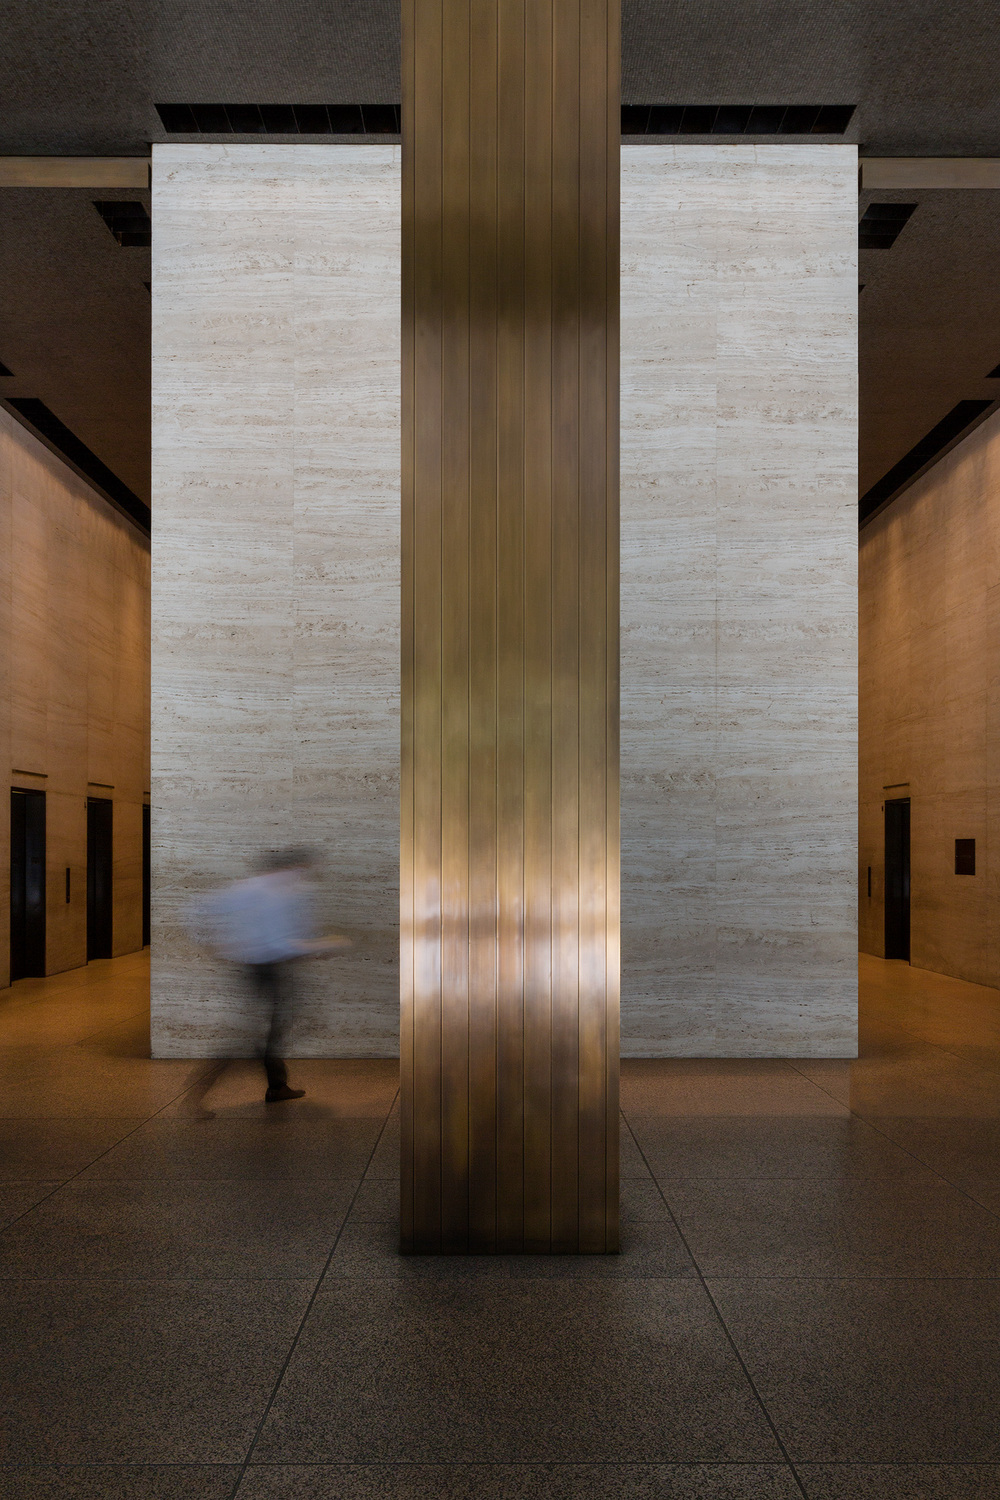 Seagram Building / Mies van der Rohe / New York NY